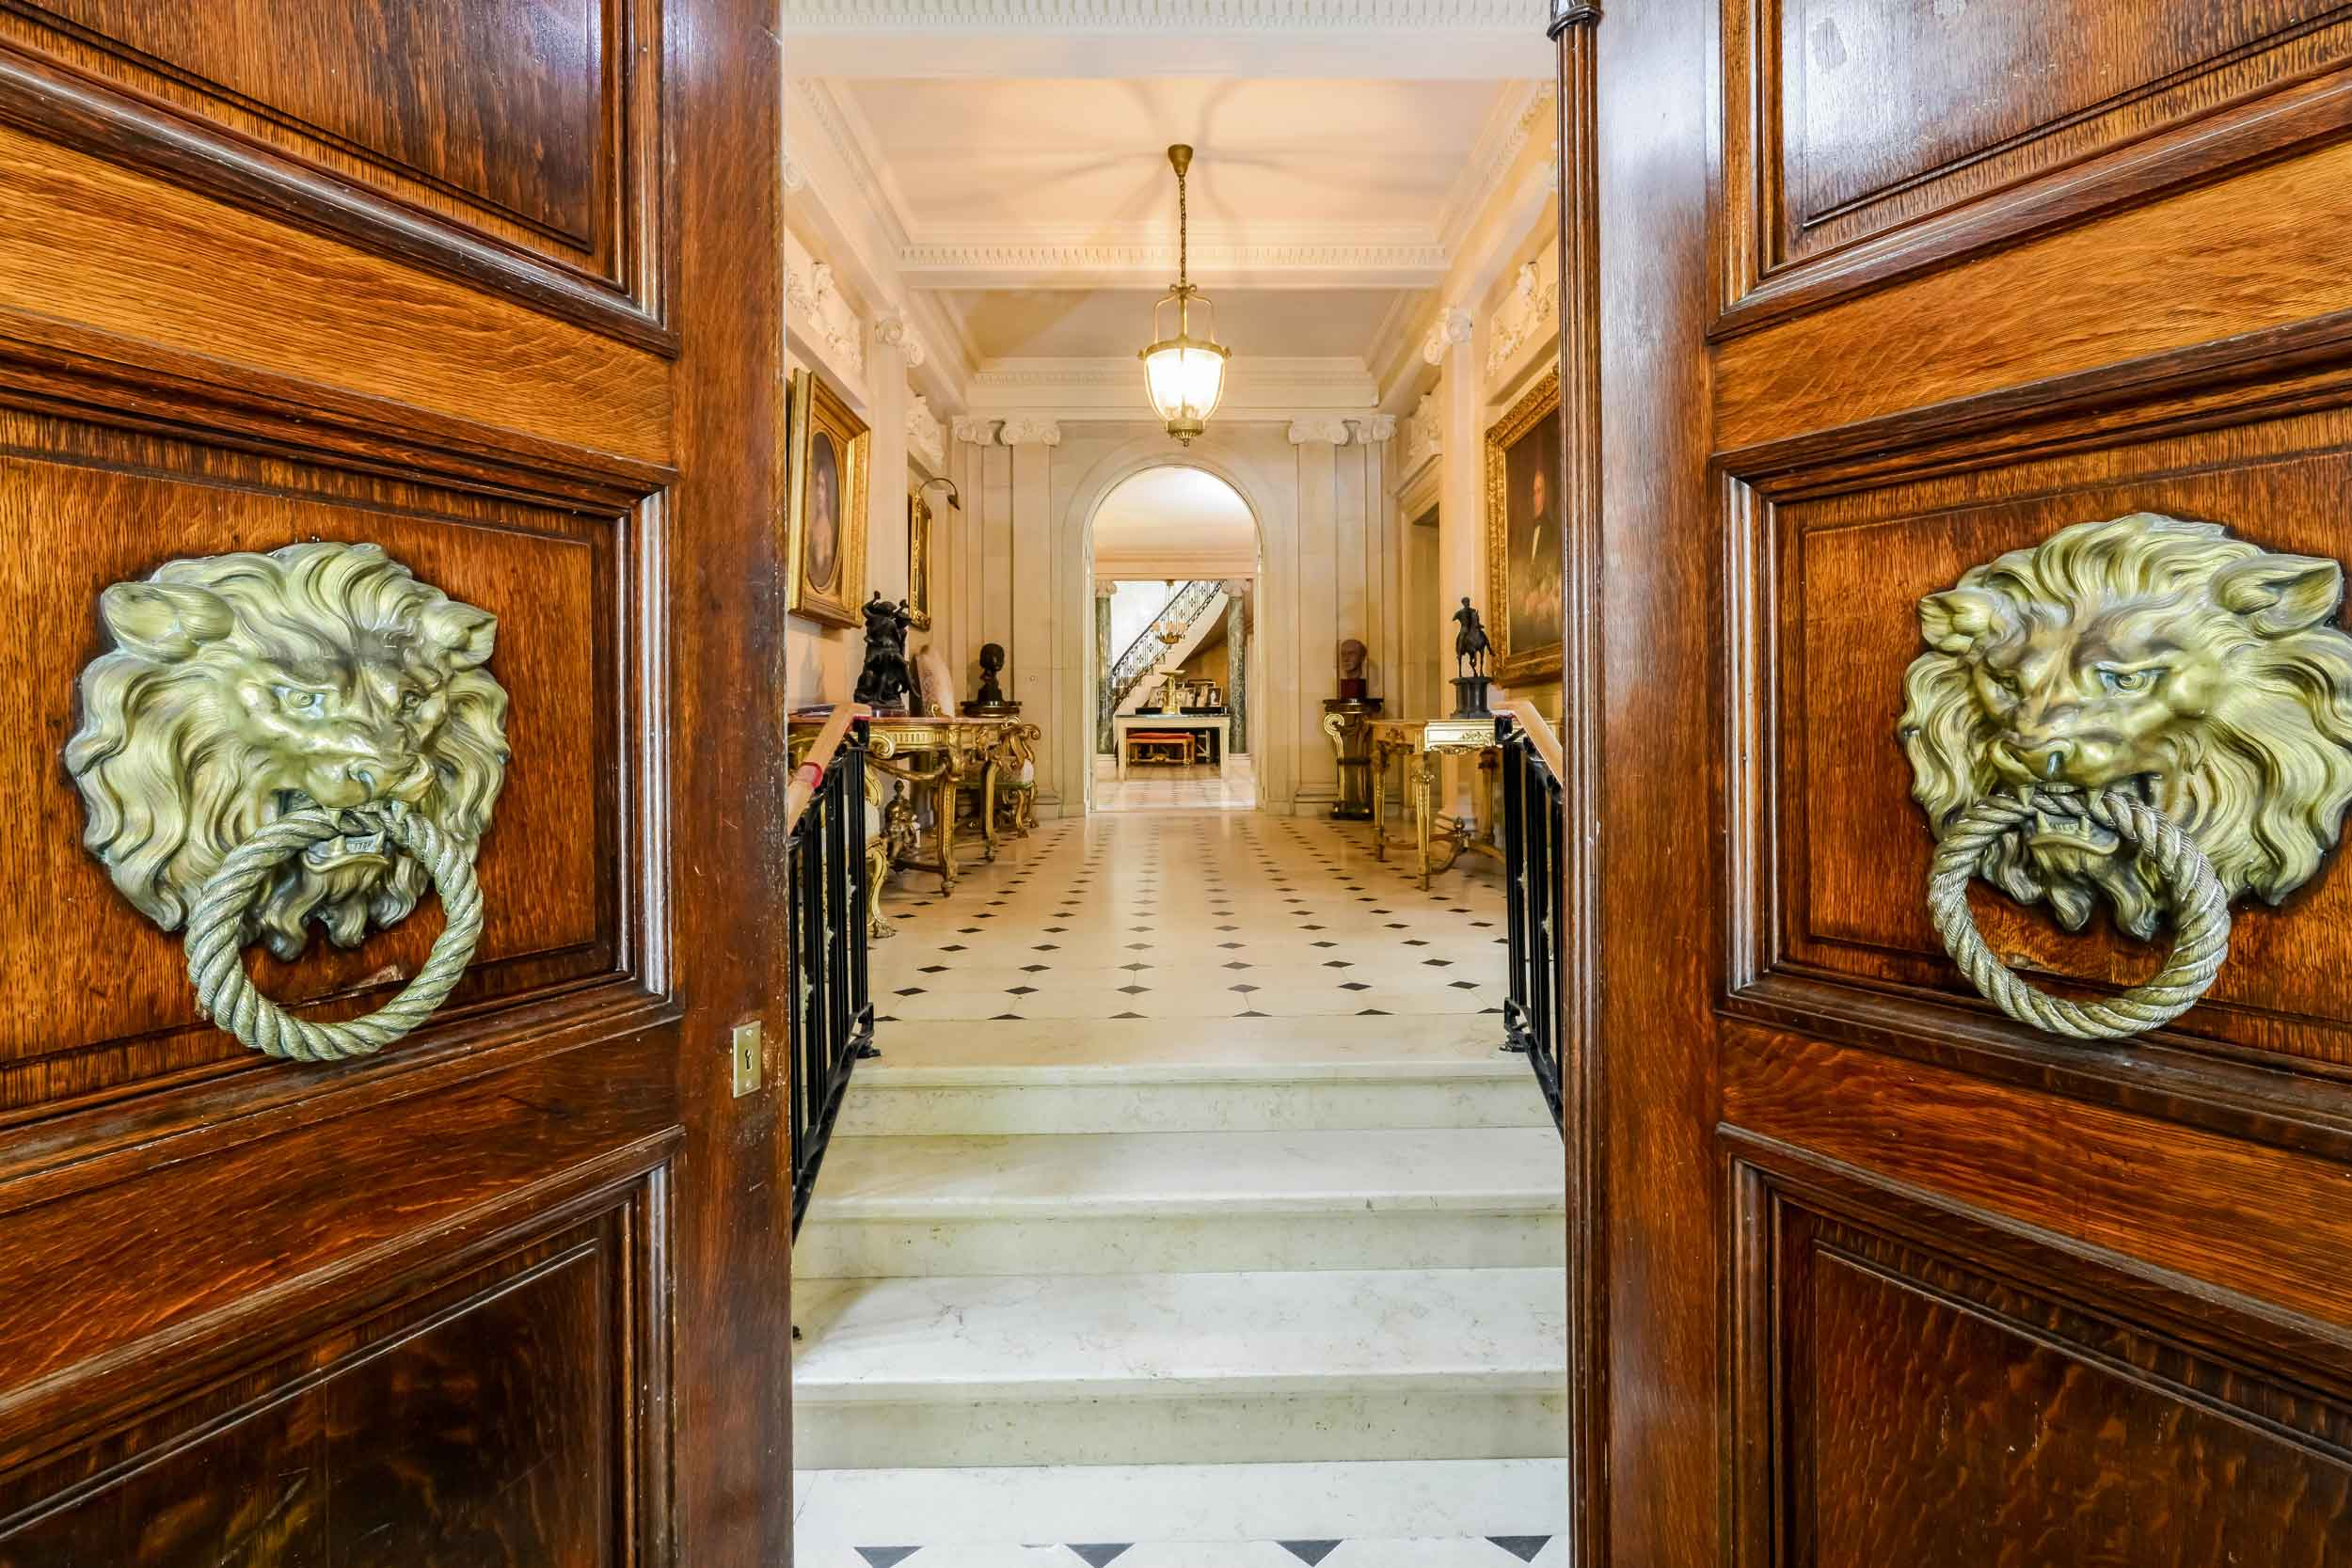 Monumental mahogany doors with antique bronze door knockers in the shape of a lion's head open to the mansion's palatial living areas, measuring 13,962 square feet, with 11 bedrooms, eight full and three half bathrooms.